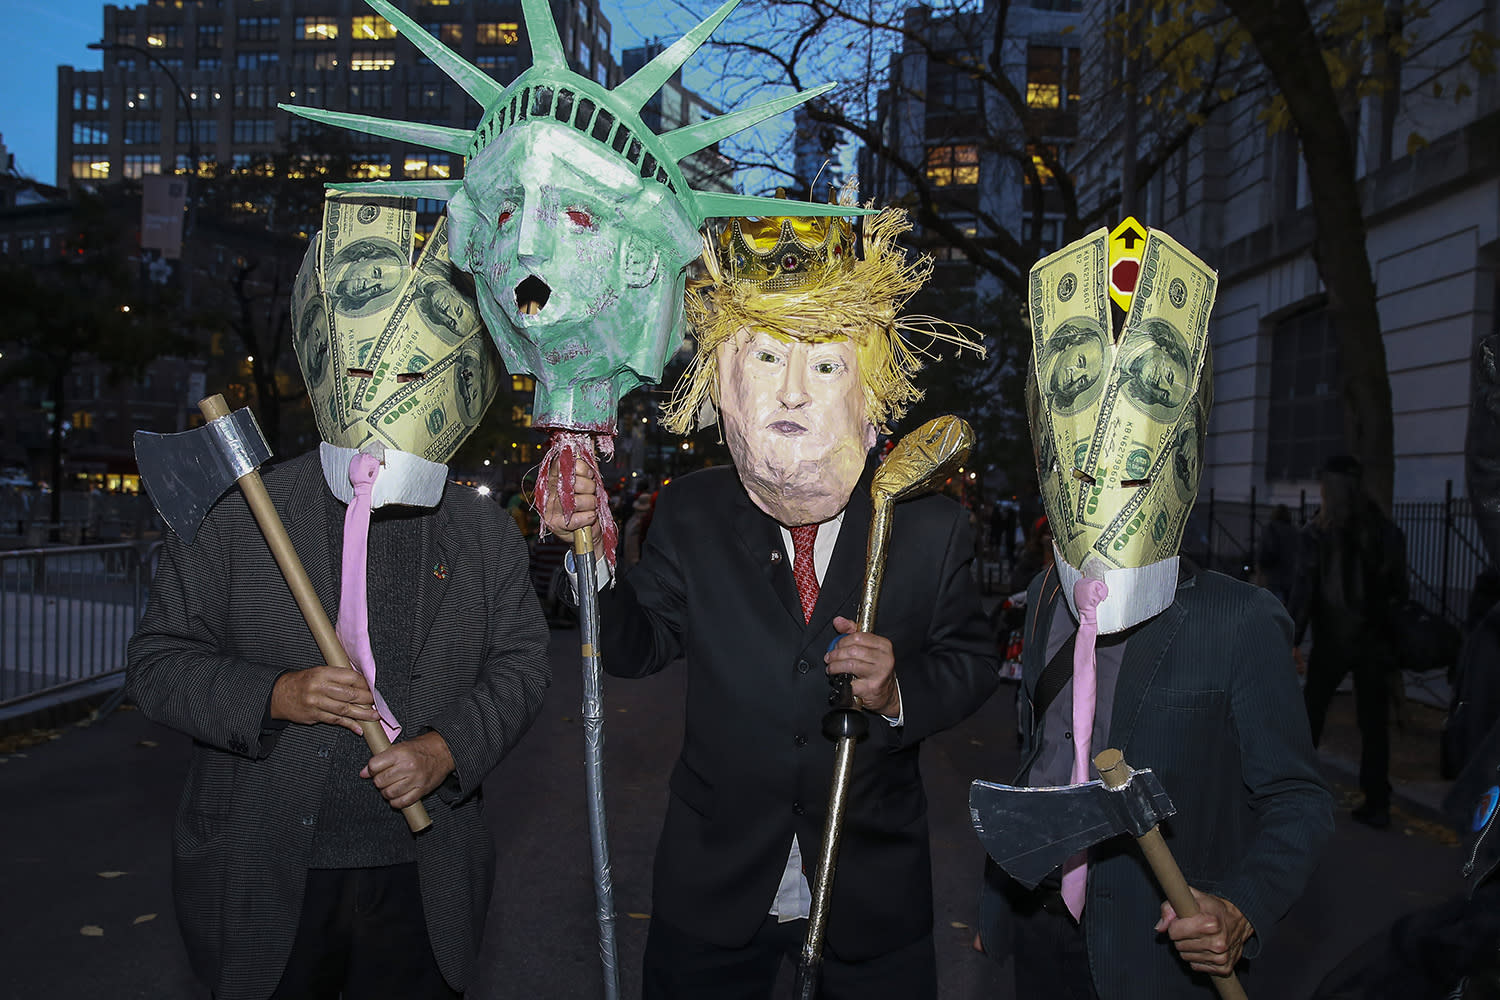 <p>People wear political costumes before the start of the 45th annual Village Halloween Parade in New York City on Oct. 31, 2018. (Gordon Donovan/Yahoo News) </p>